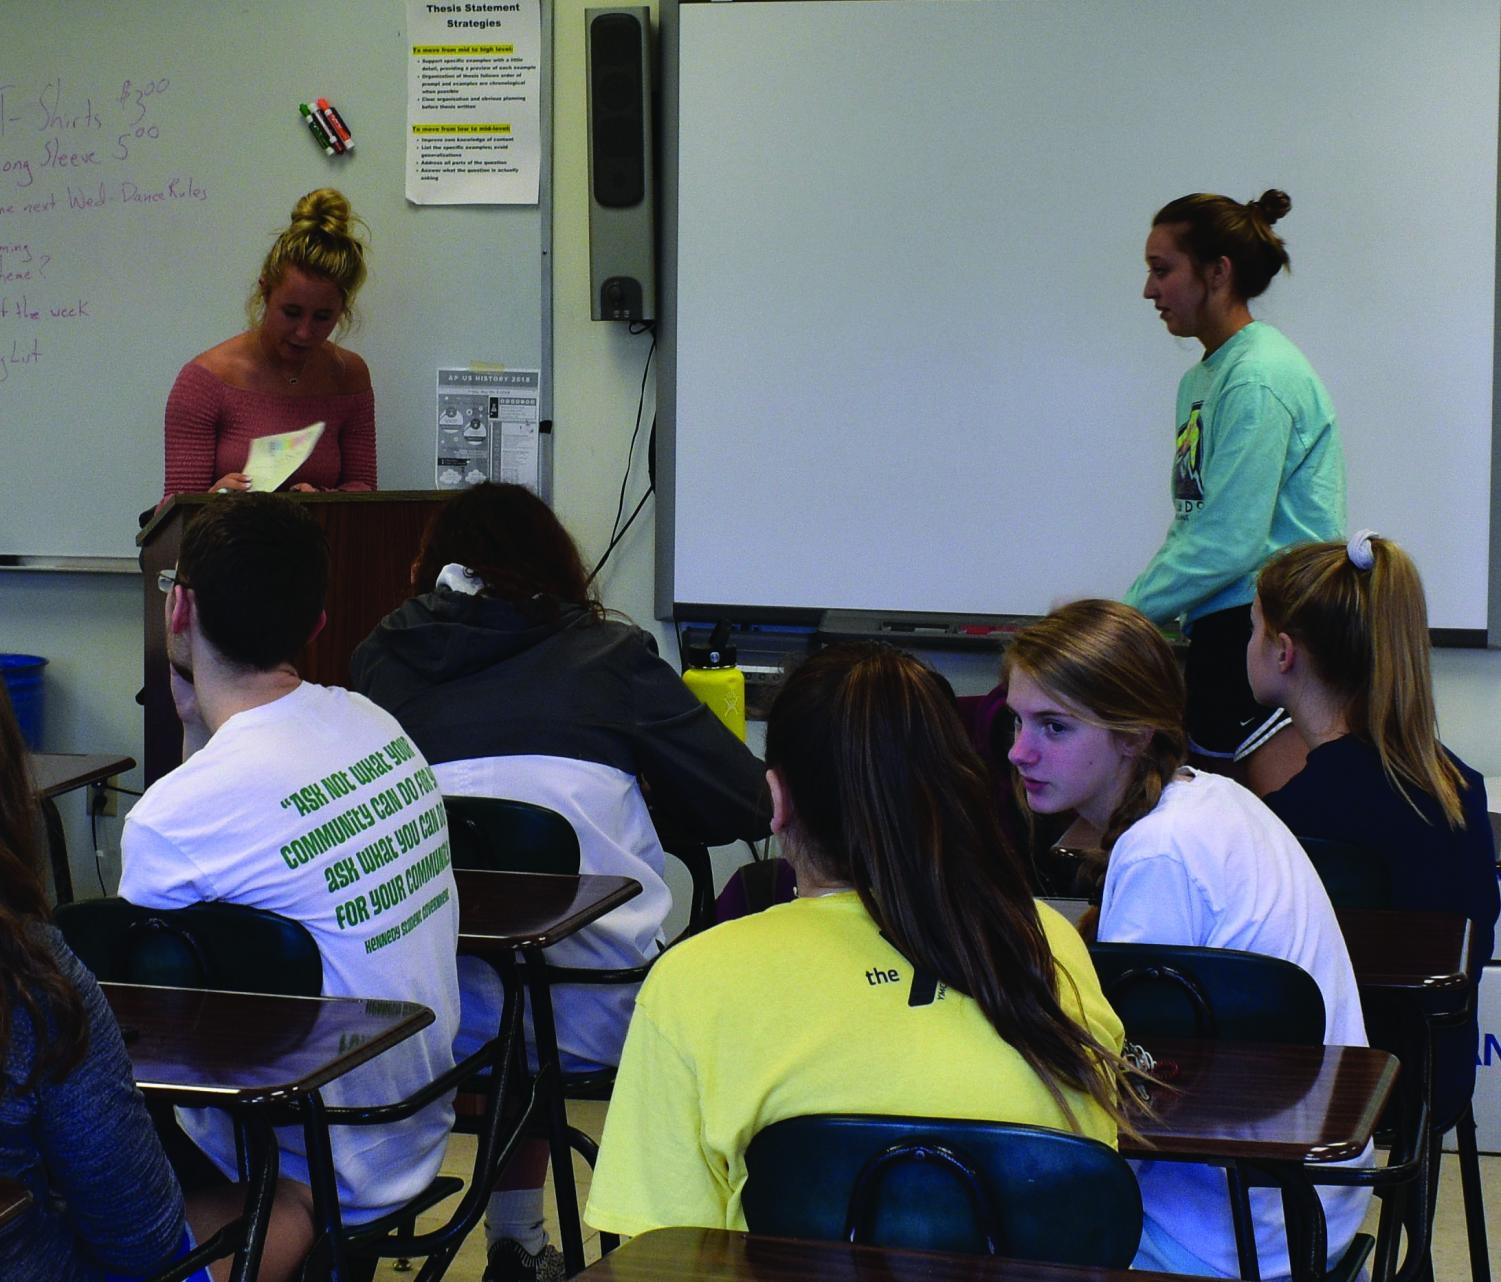 Seniors Hailey Dolphin and Evyn DeWitte take attendance at the start of class and give announcements.